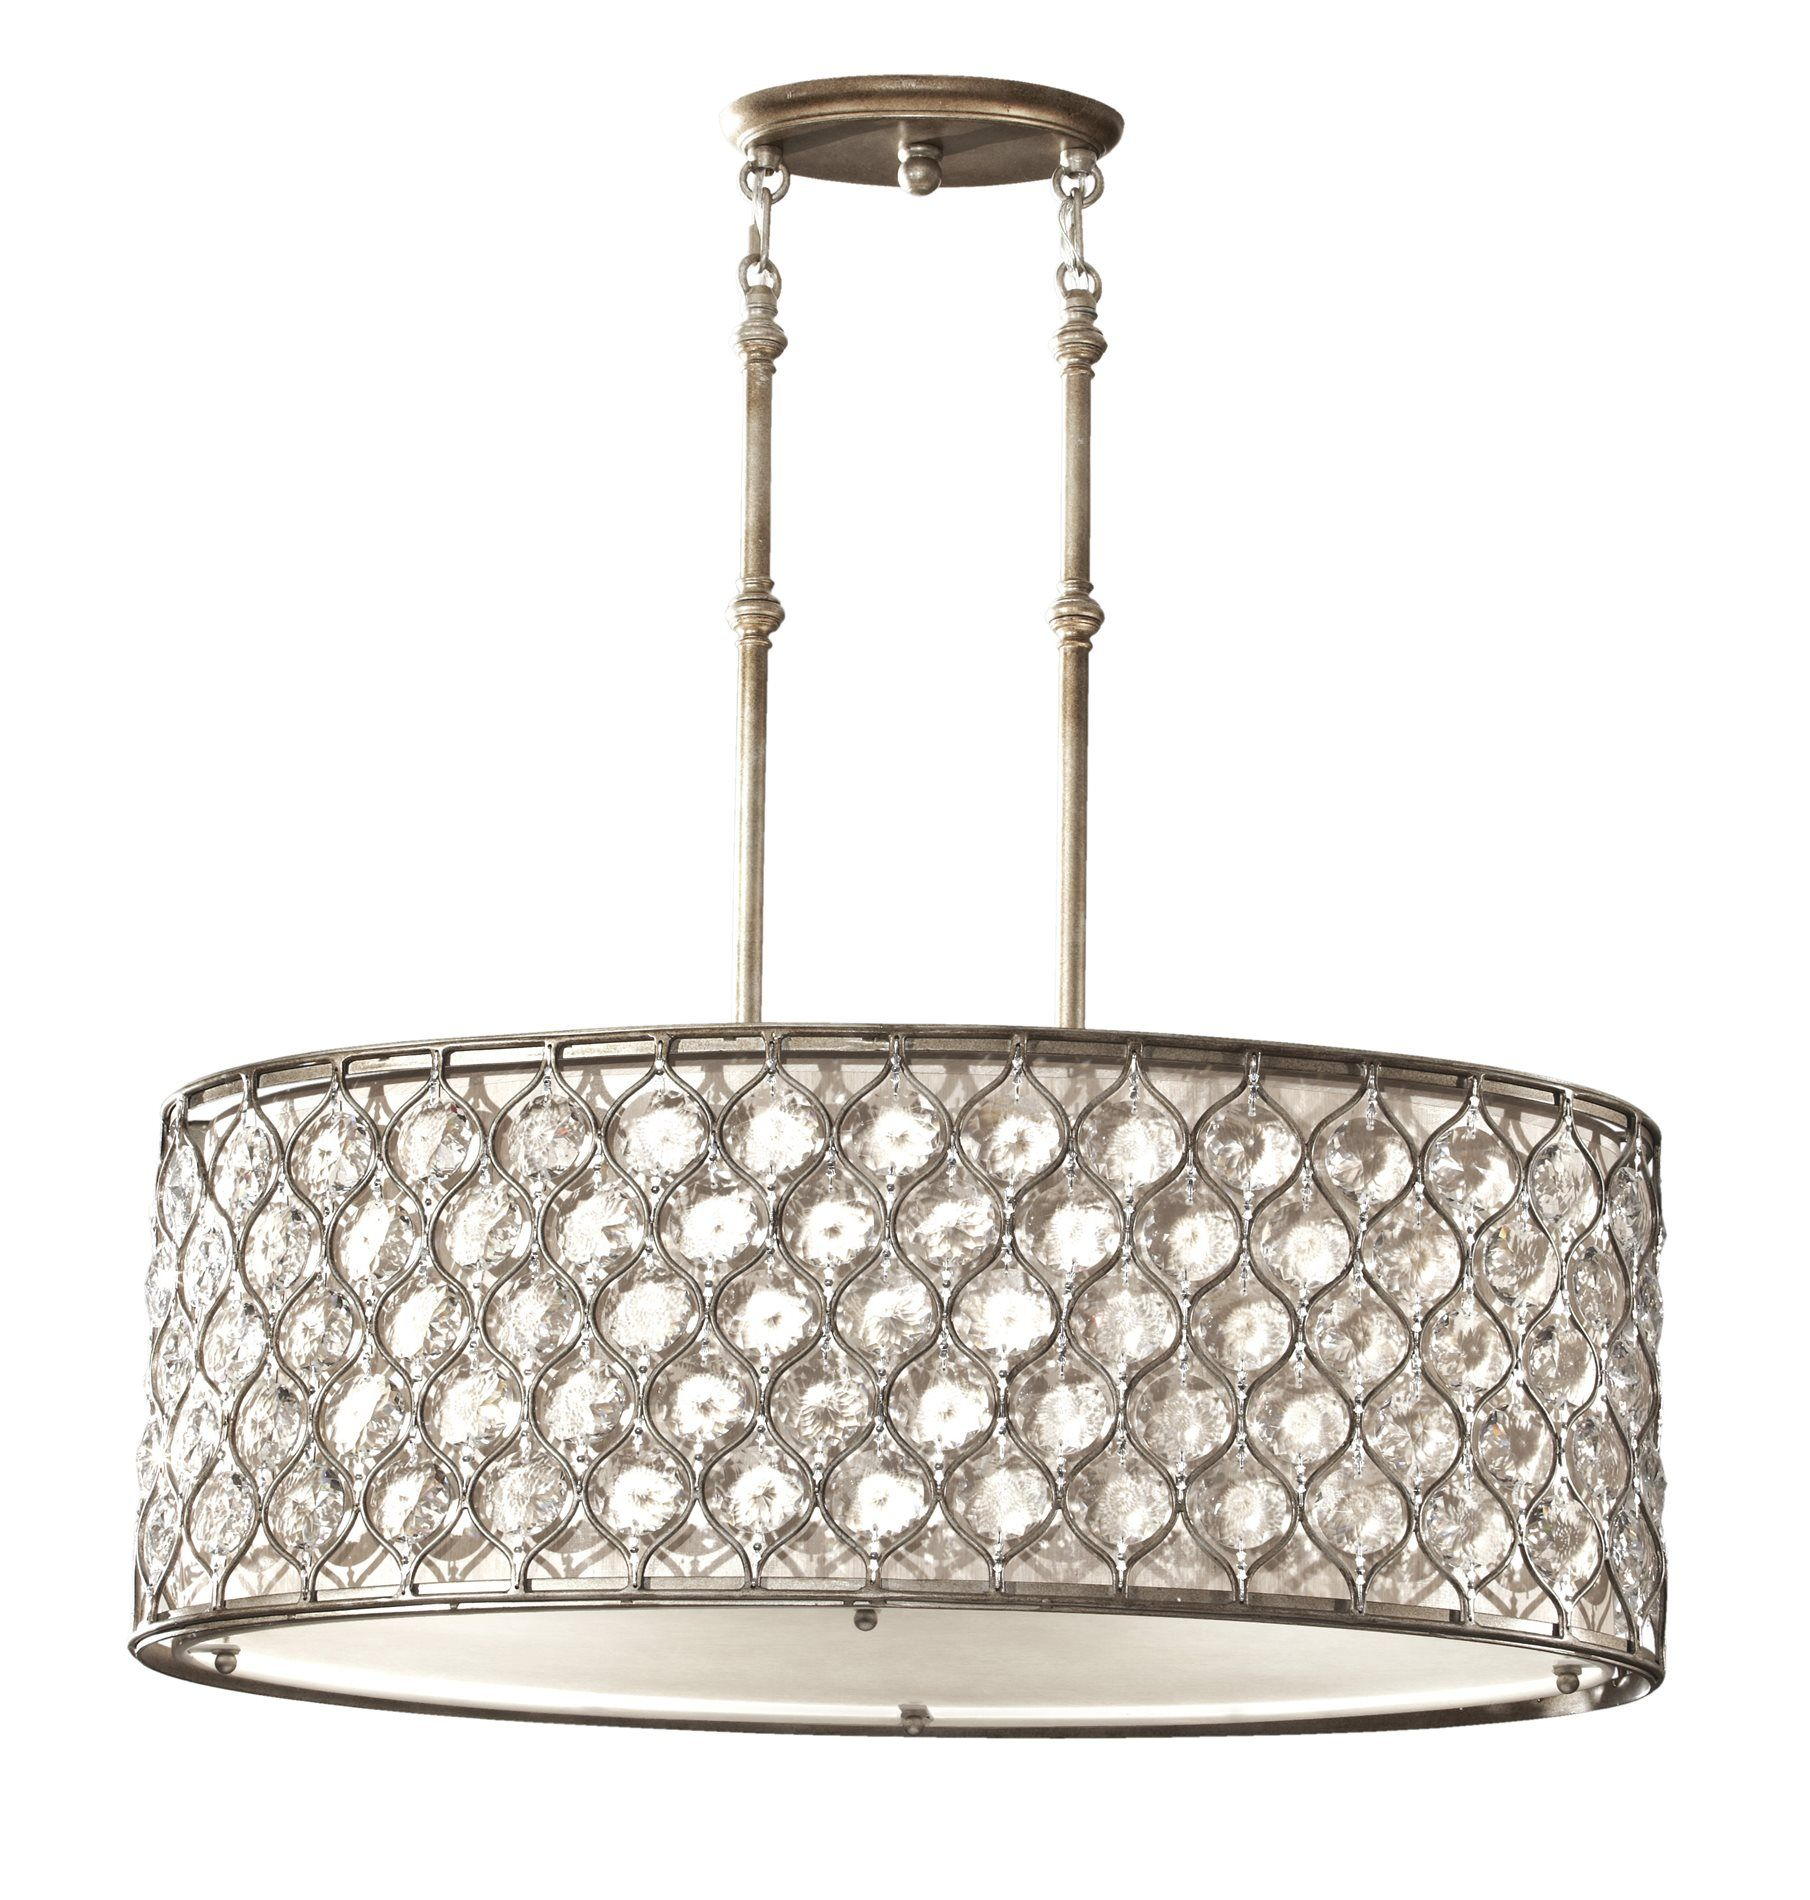 South shore decorating murray feiss f25693bus lucia modern murray feiss f25693bus lucia modern contemporary crystal drum pendant light mrf f2569 3bus arubaitofo Choice Image